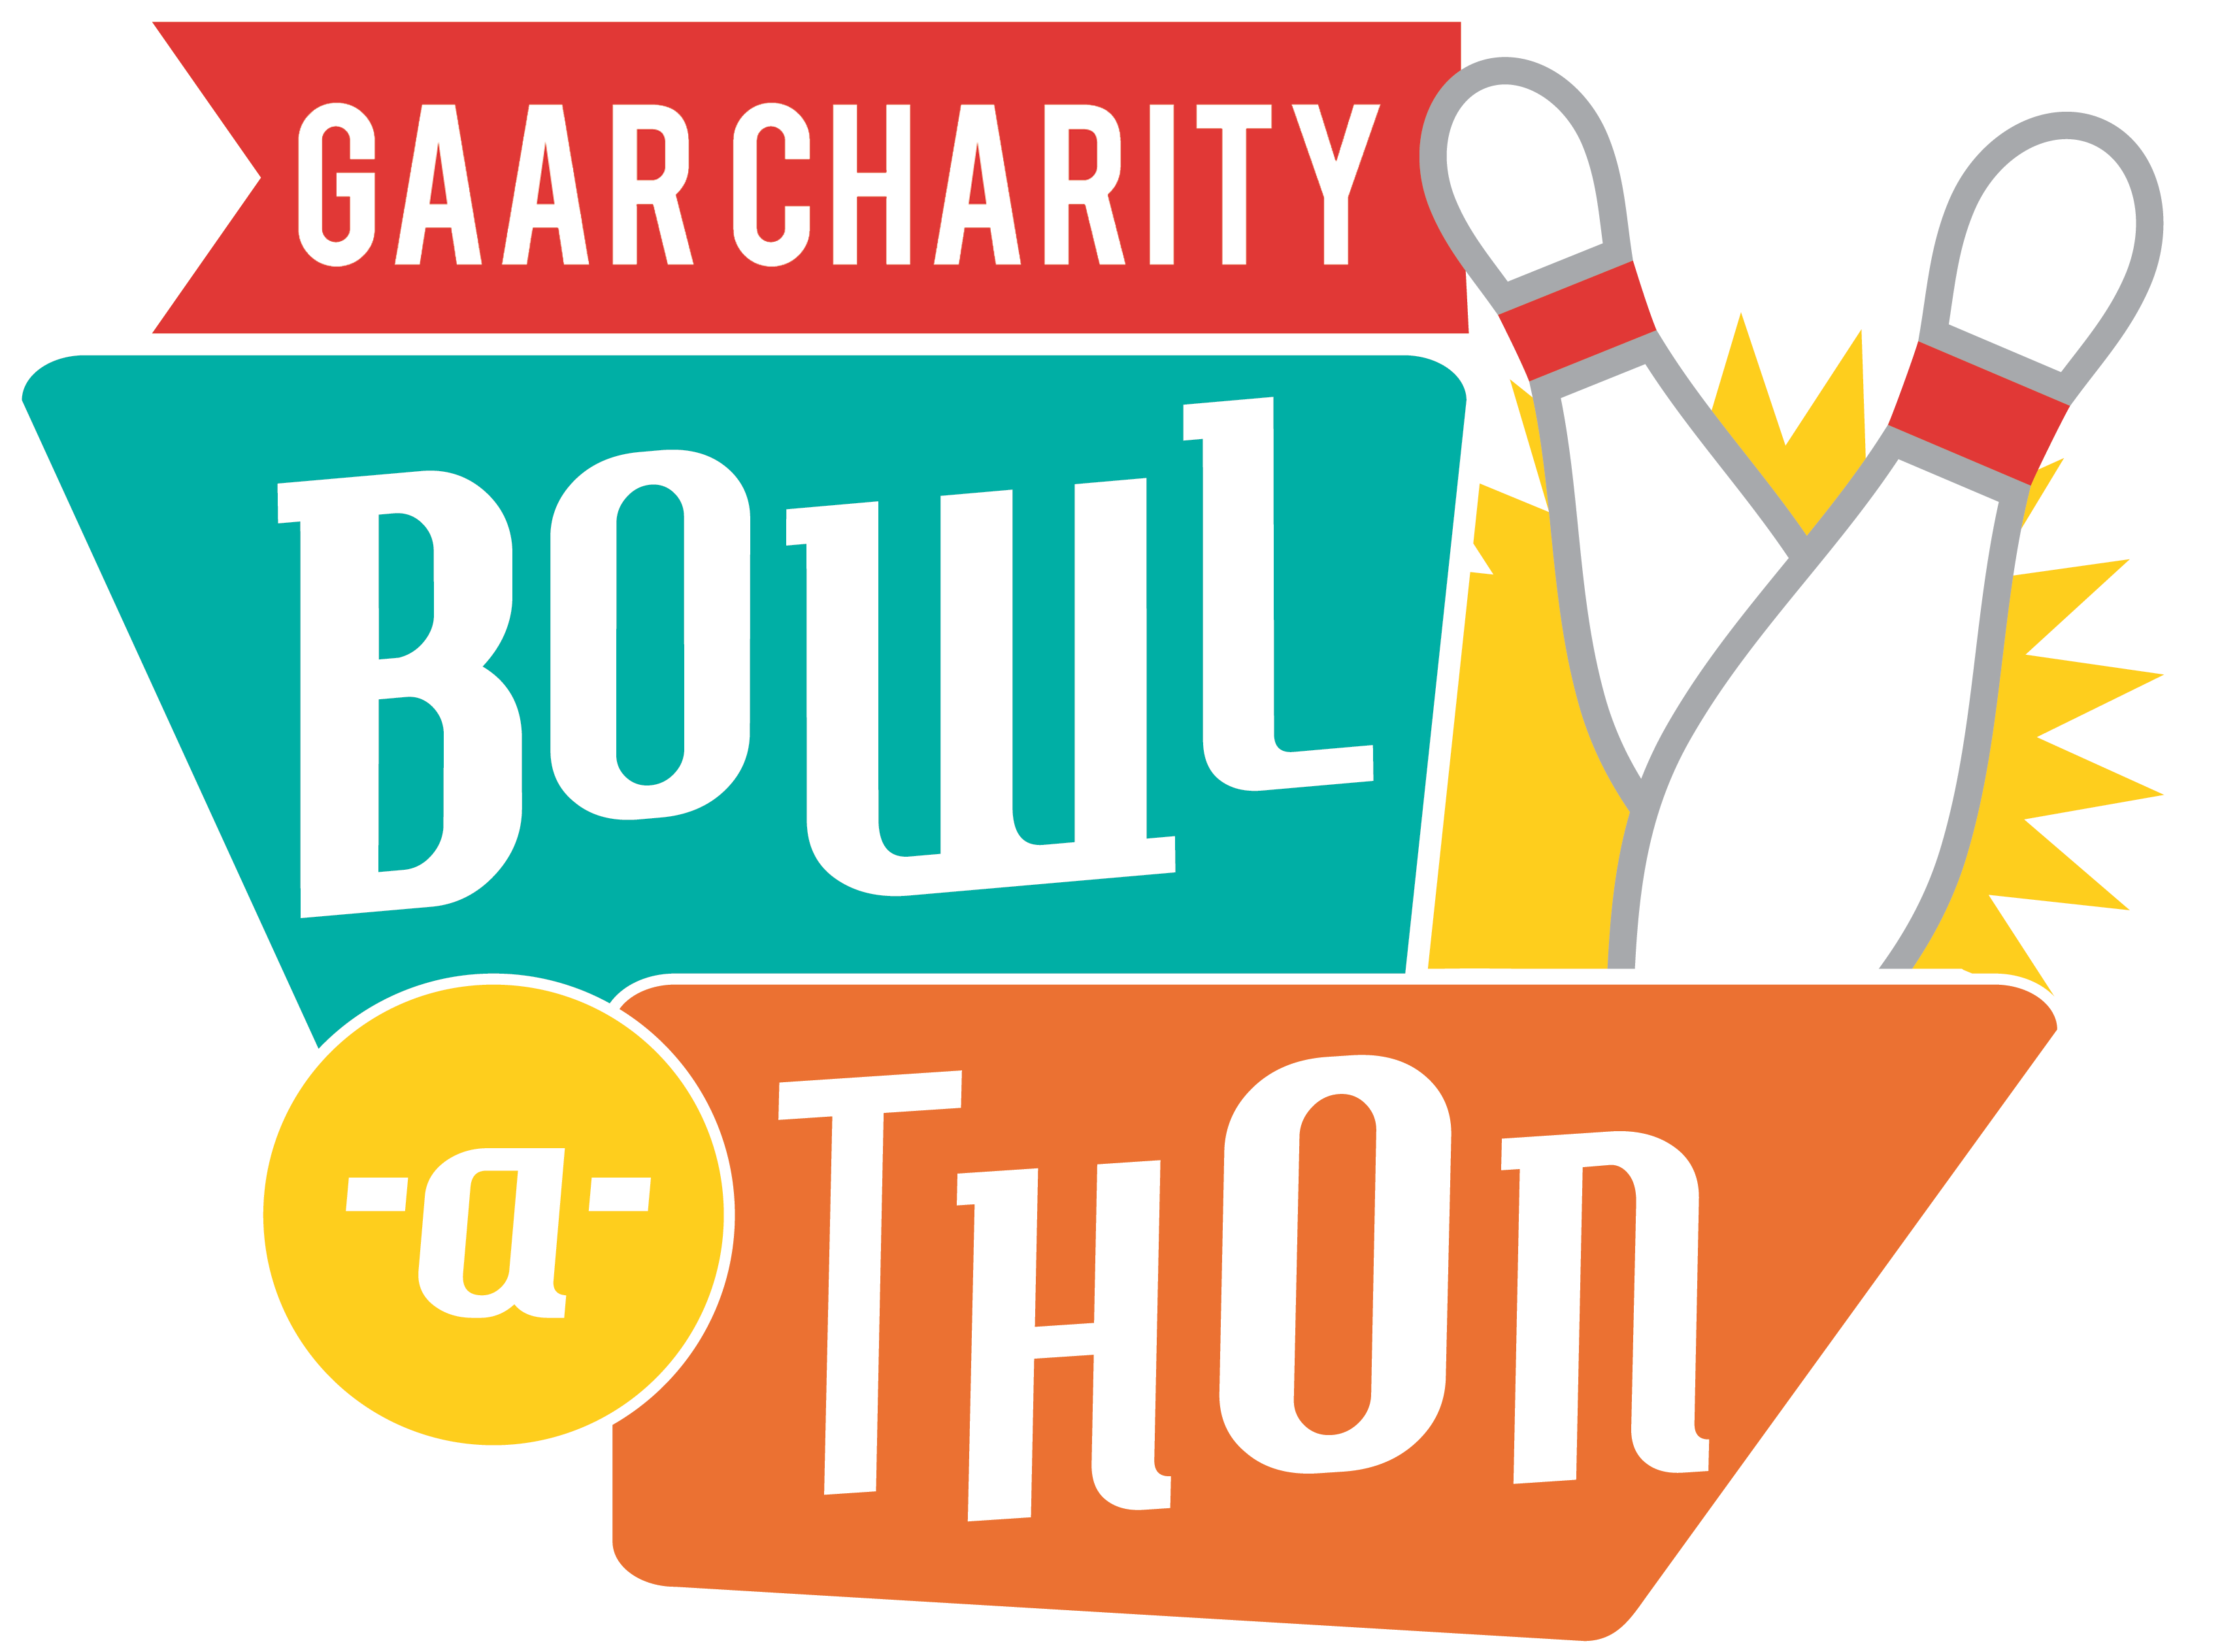 We need you! Bowl-a-Thon on Saturday, October 20th